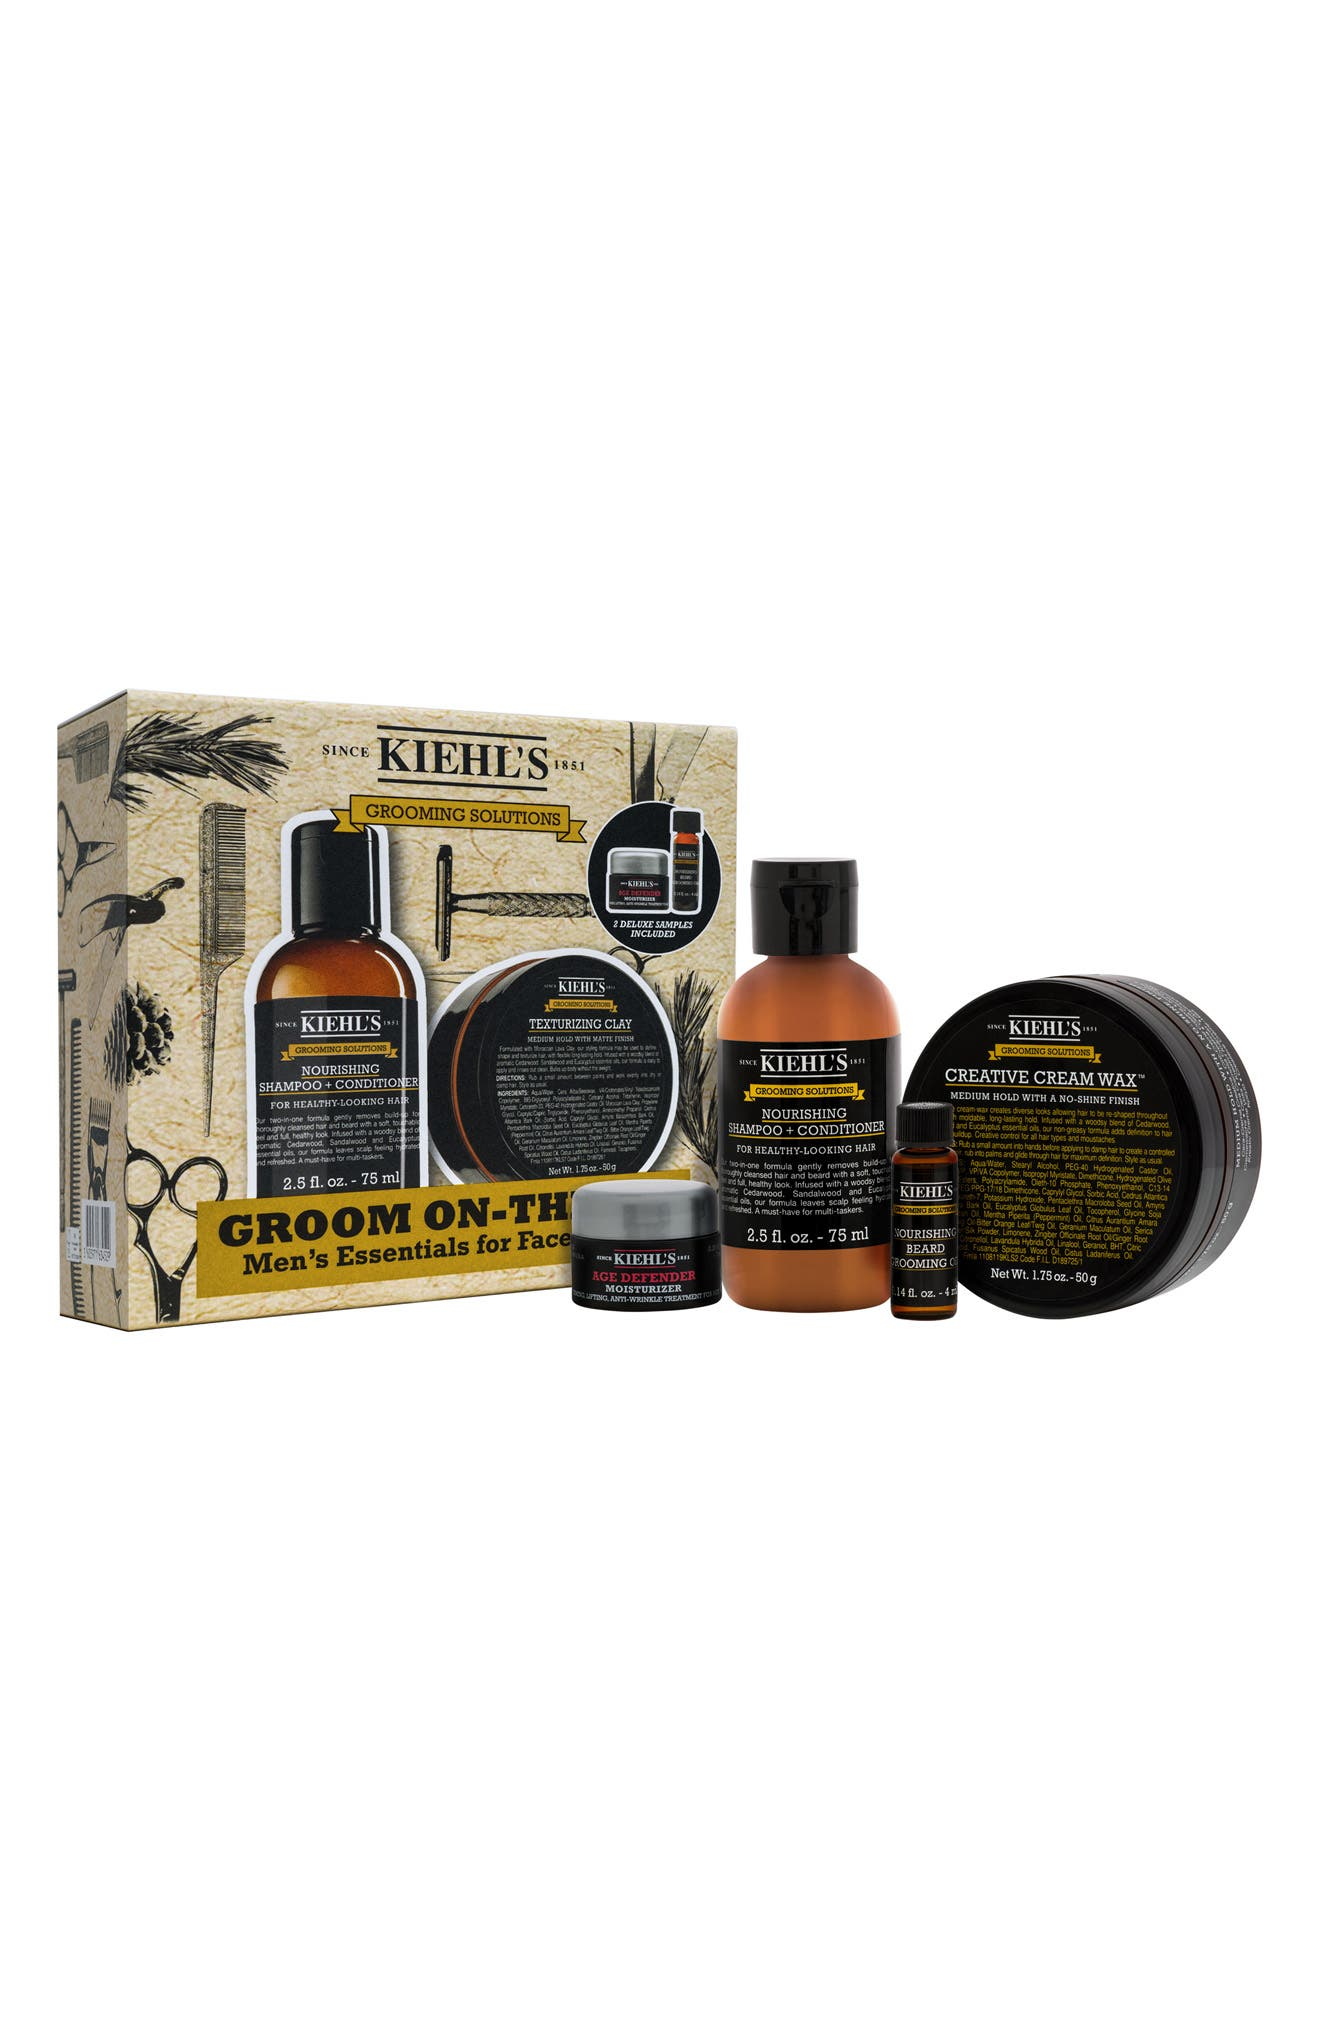 Alternate Image 1 Selected - Kiehl's Since 1851 Men's Grooming Set